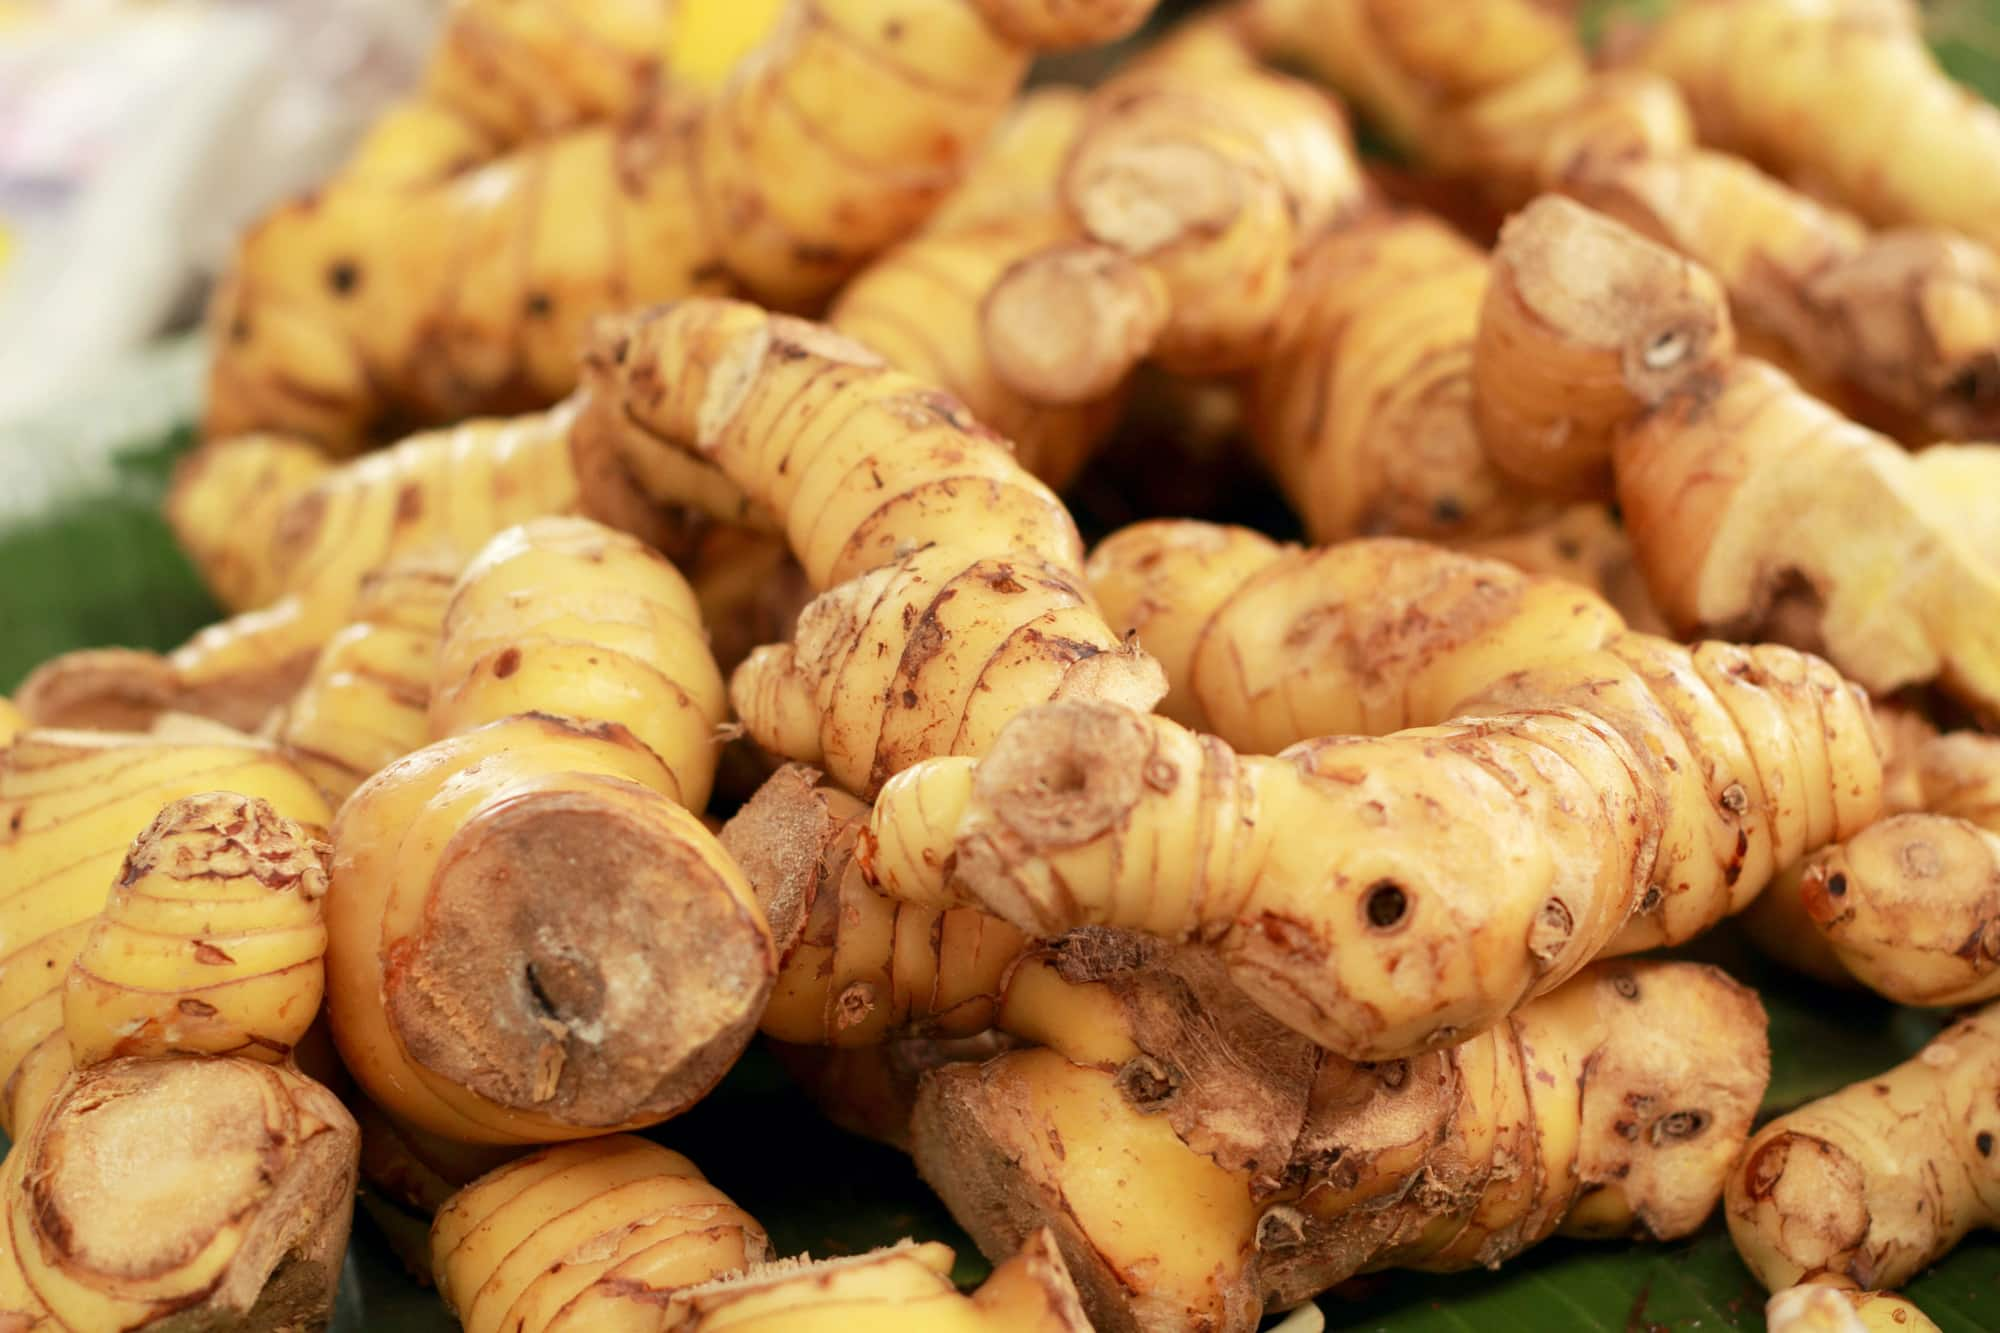 Galangal vs Ginger